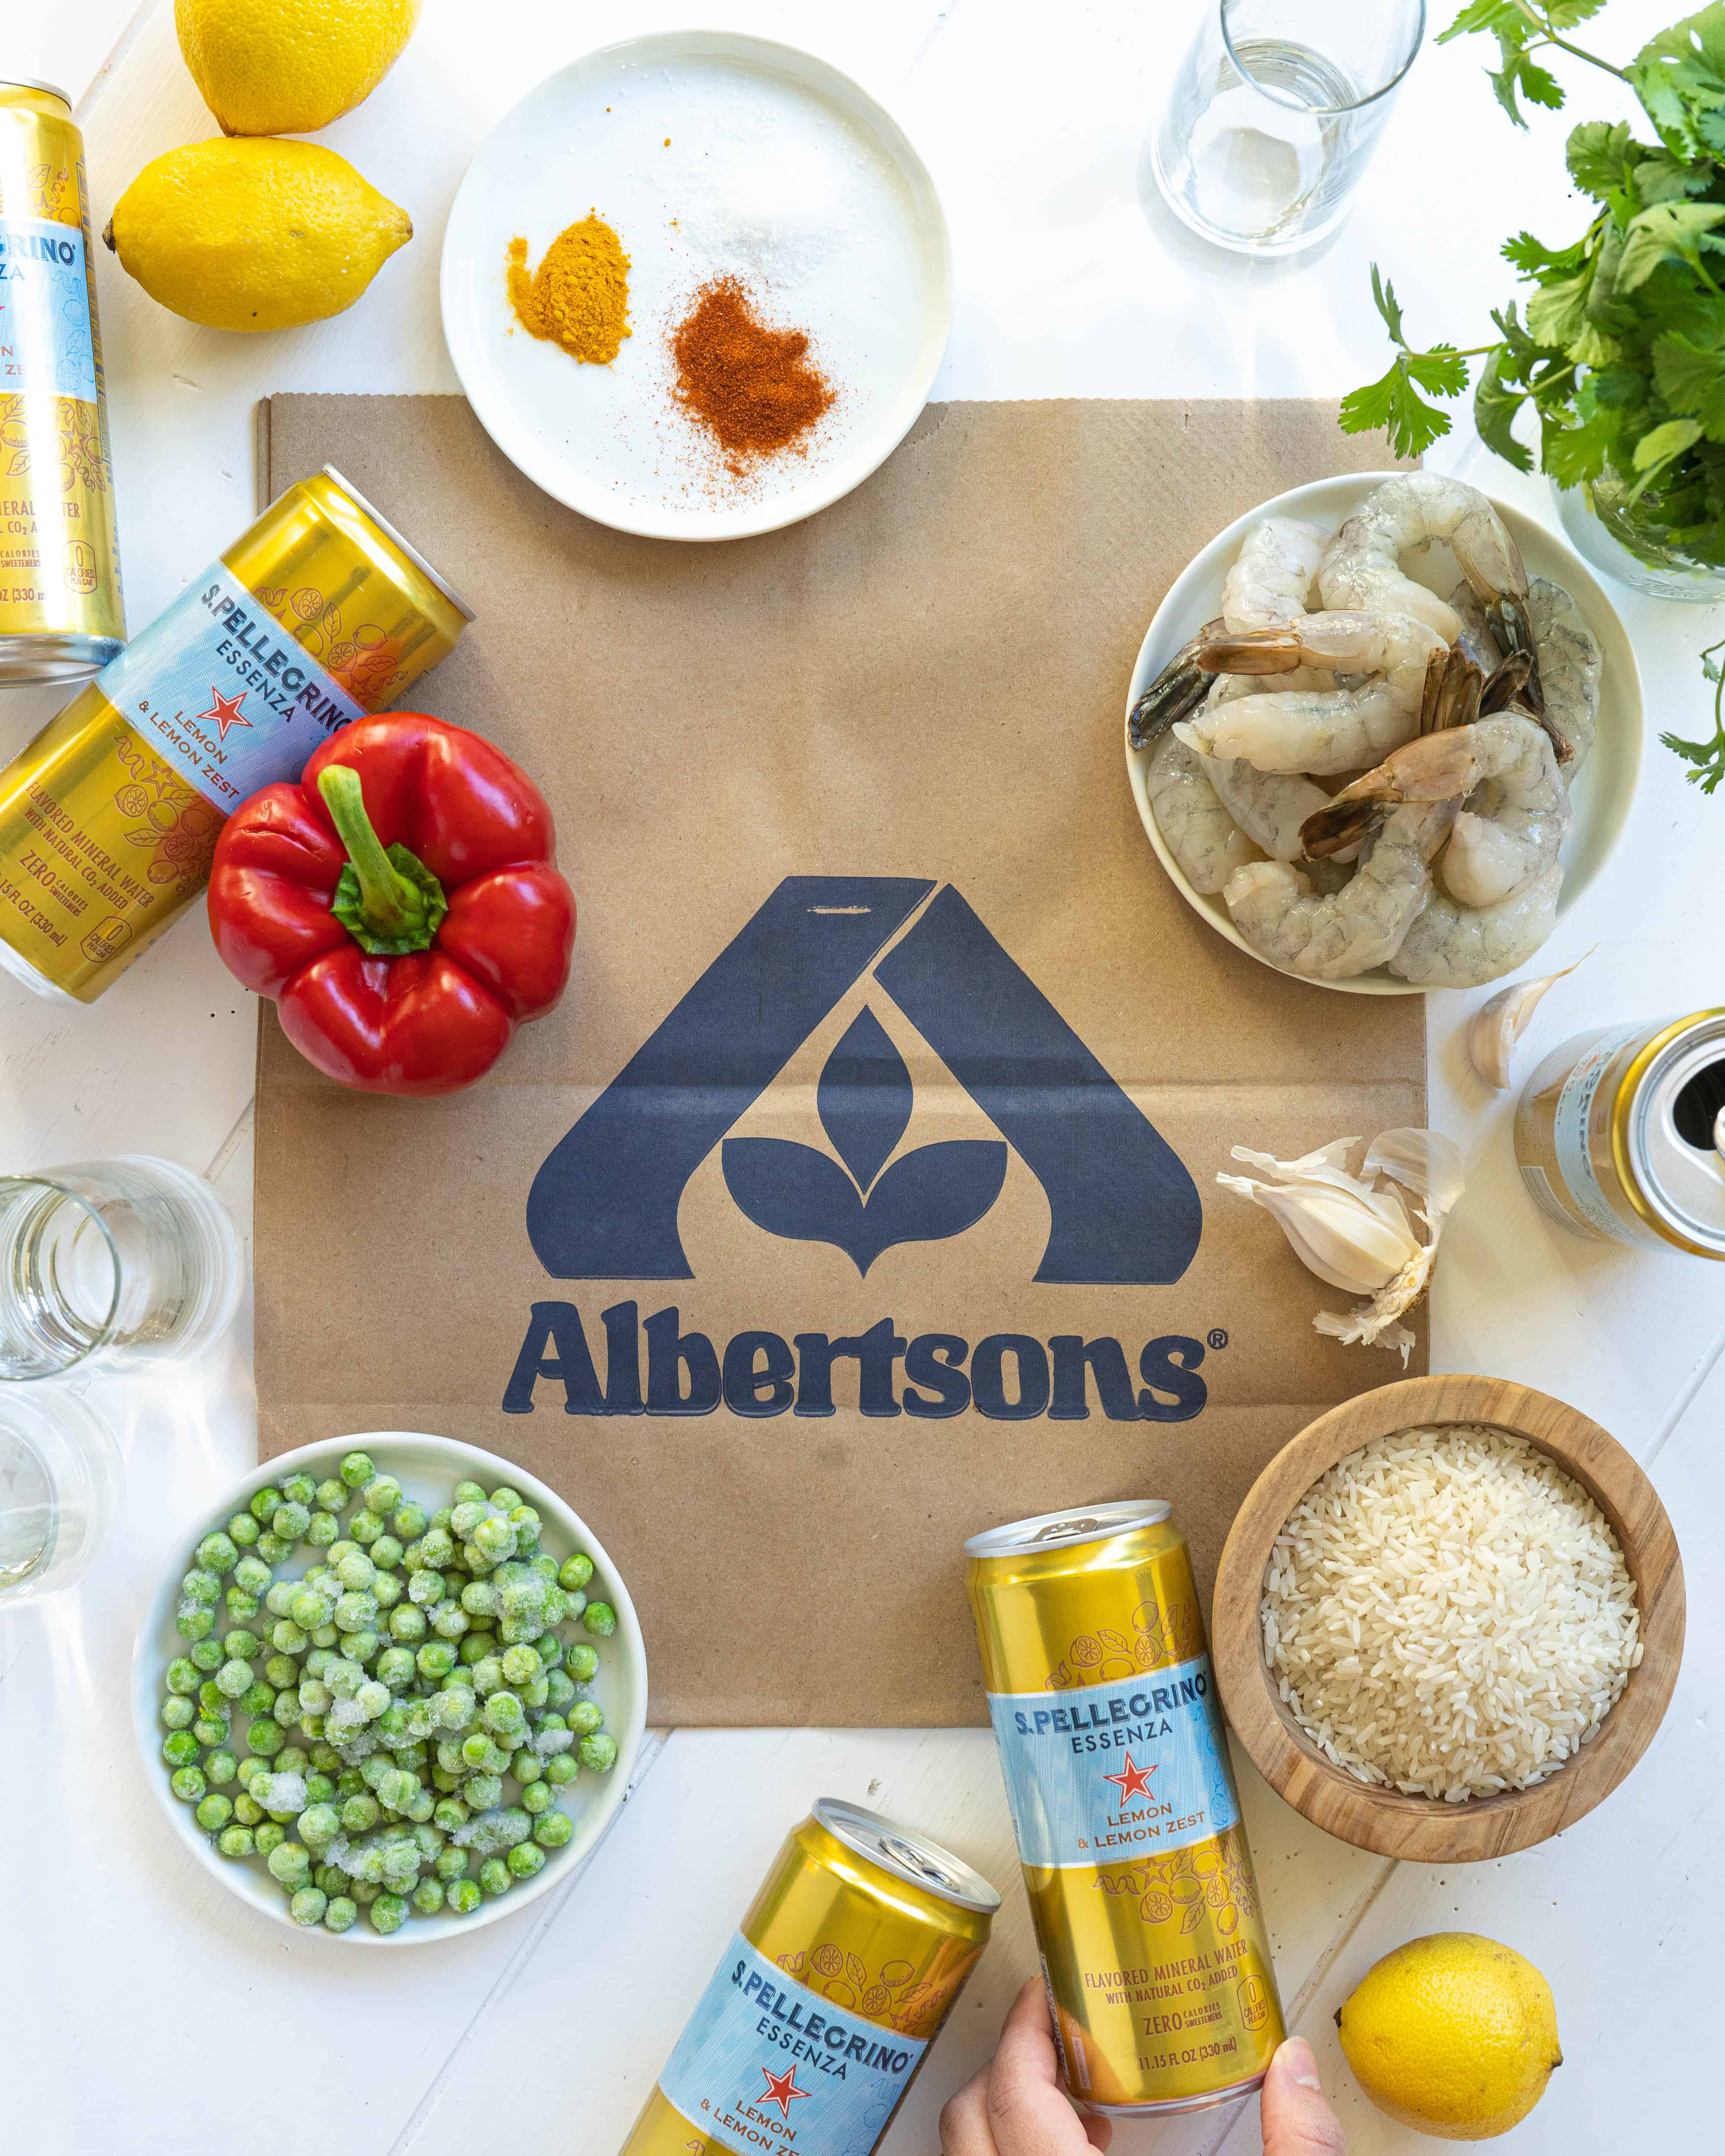 Ingredients on an Albertsons bag with cans of mineral water and glasses